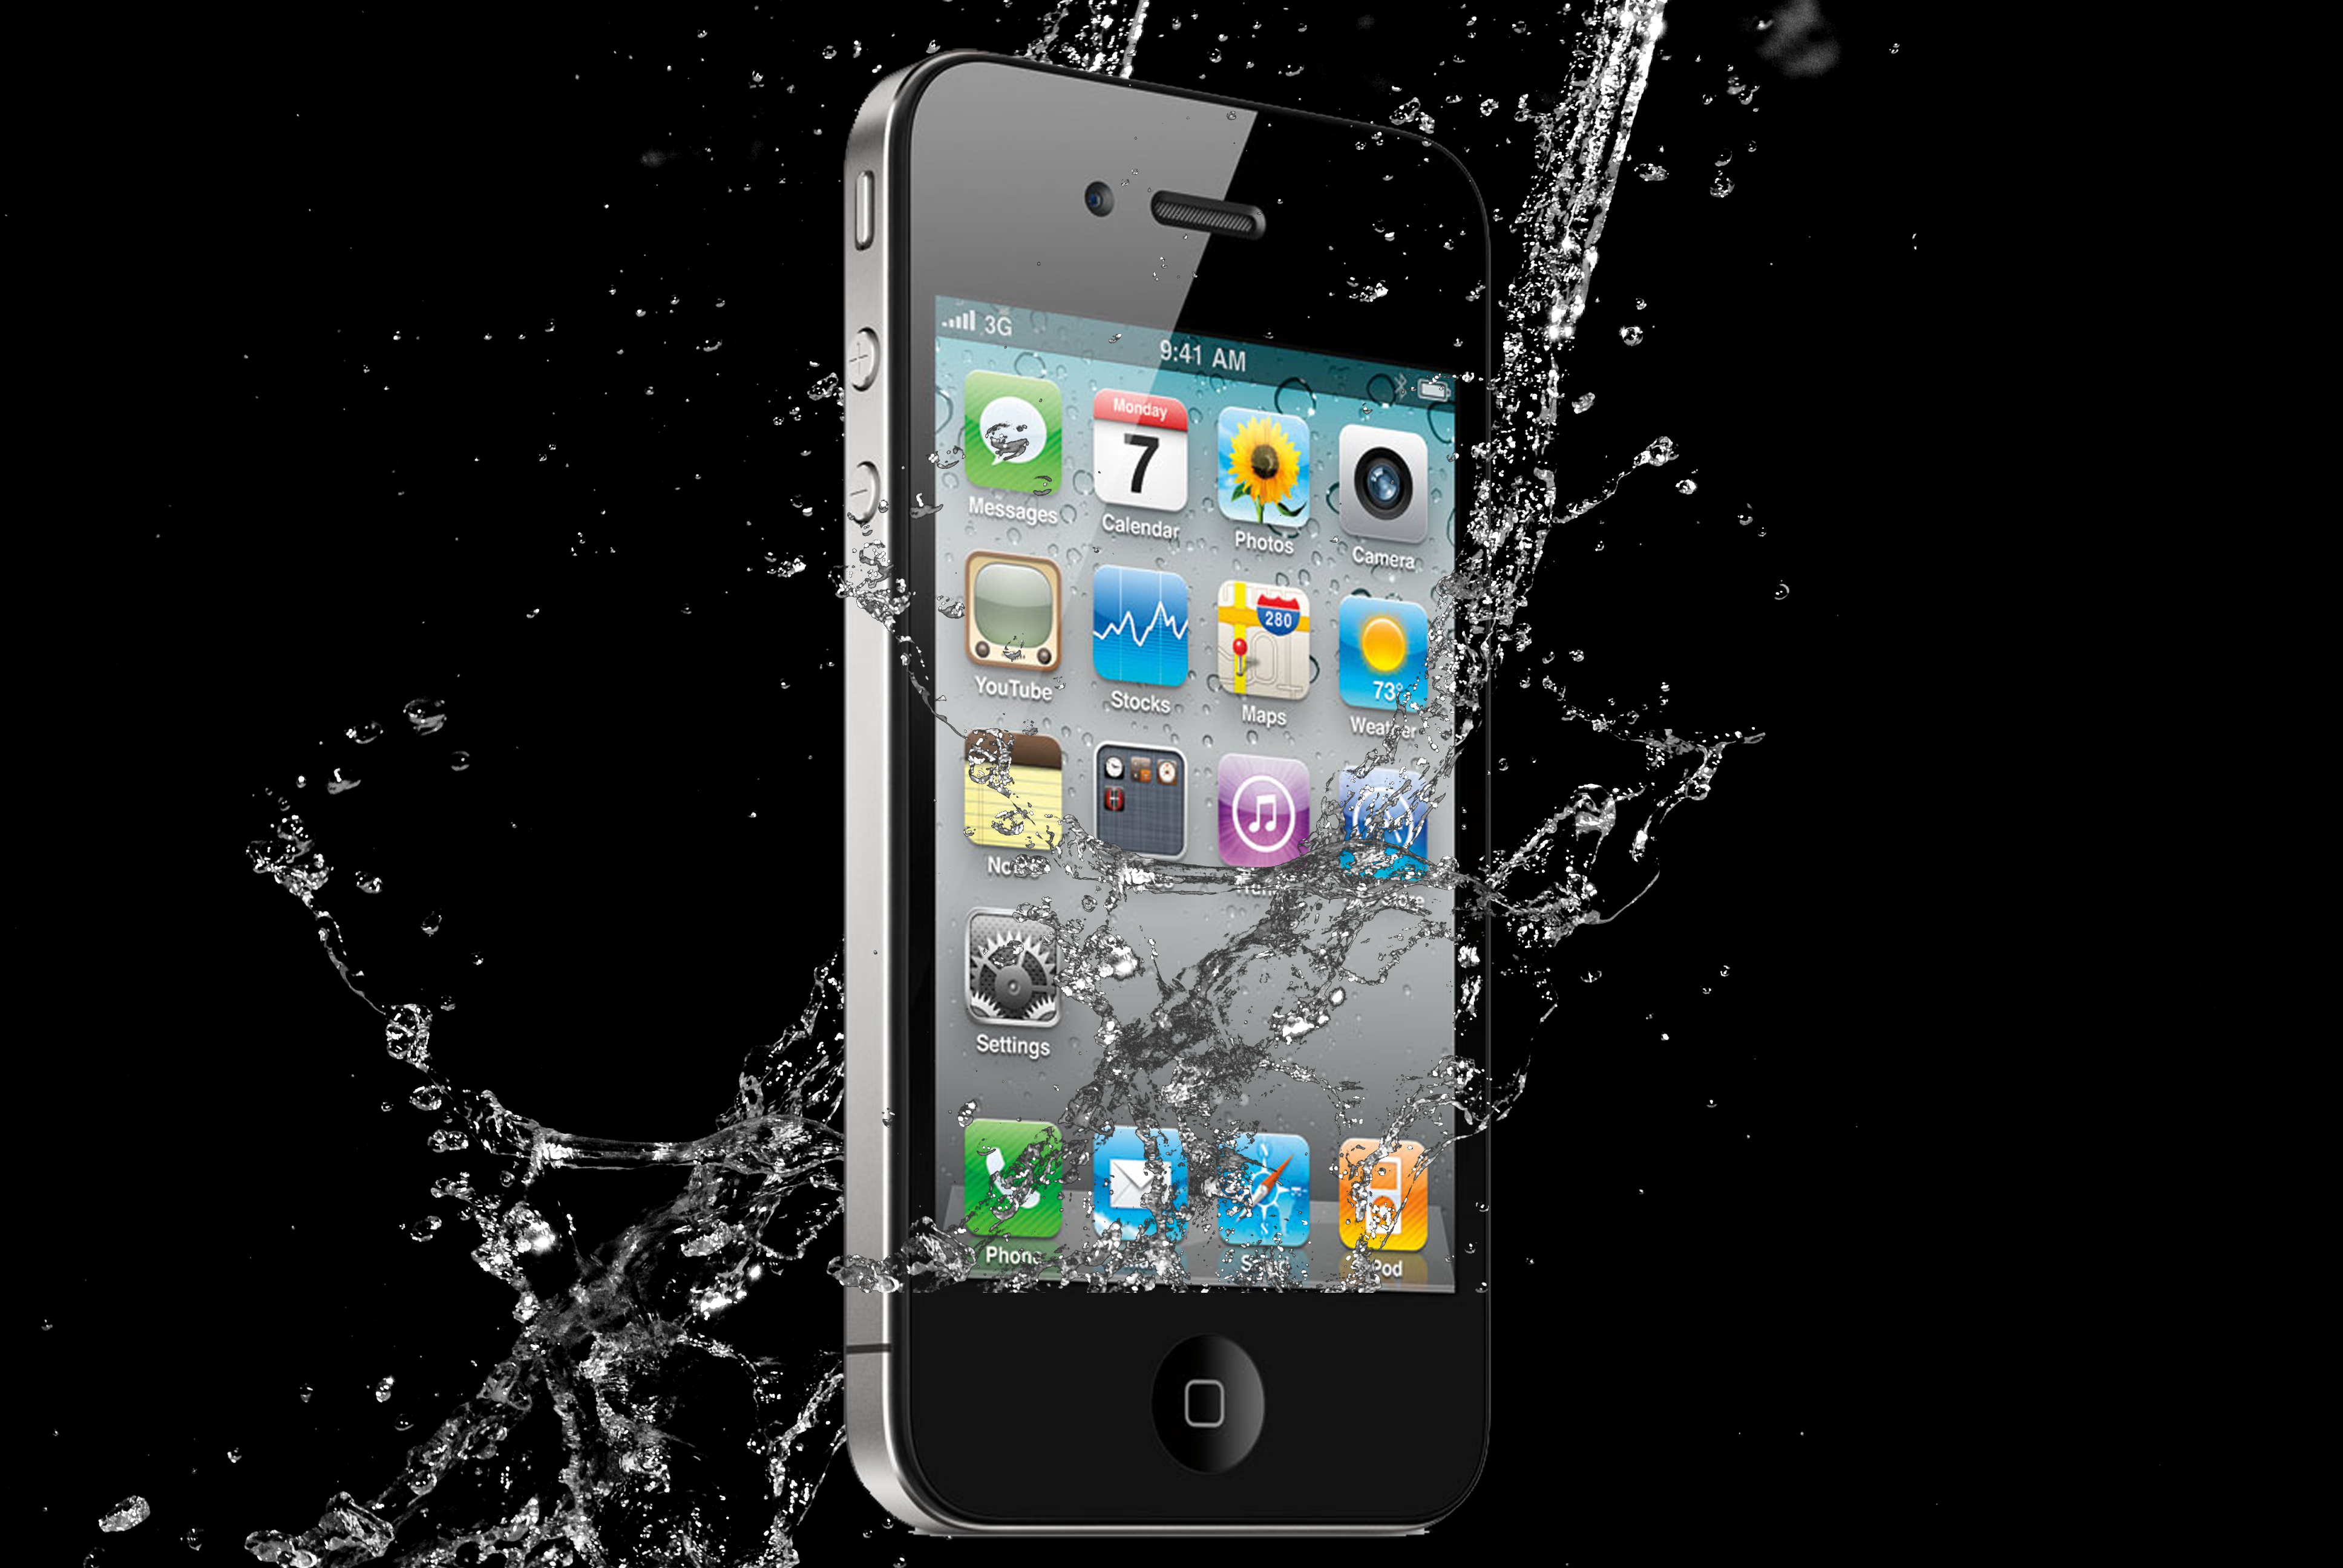 iPhone being dropped in water with water damage